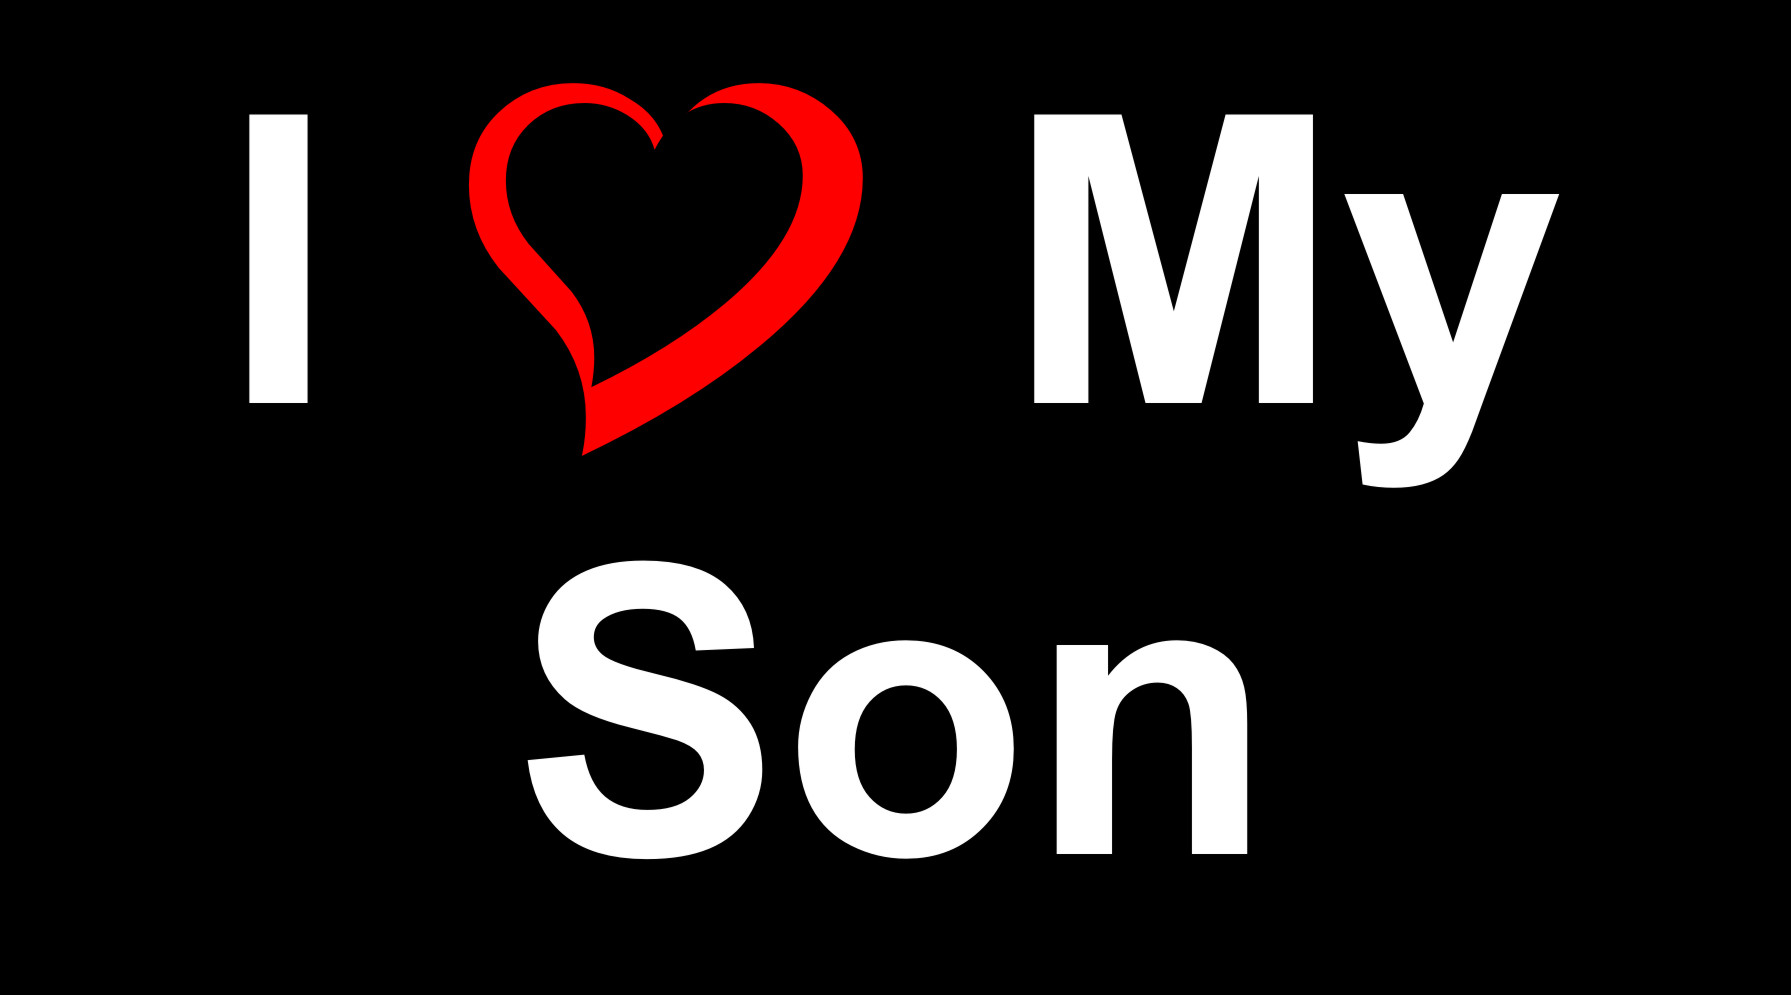 I Love You Son Quotes. QuotesGram